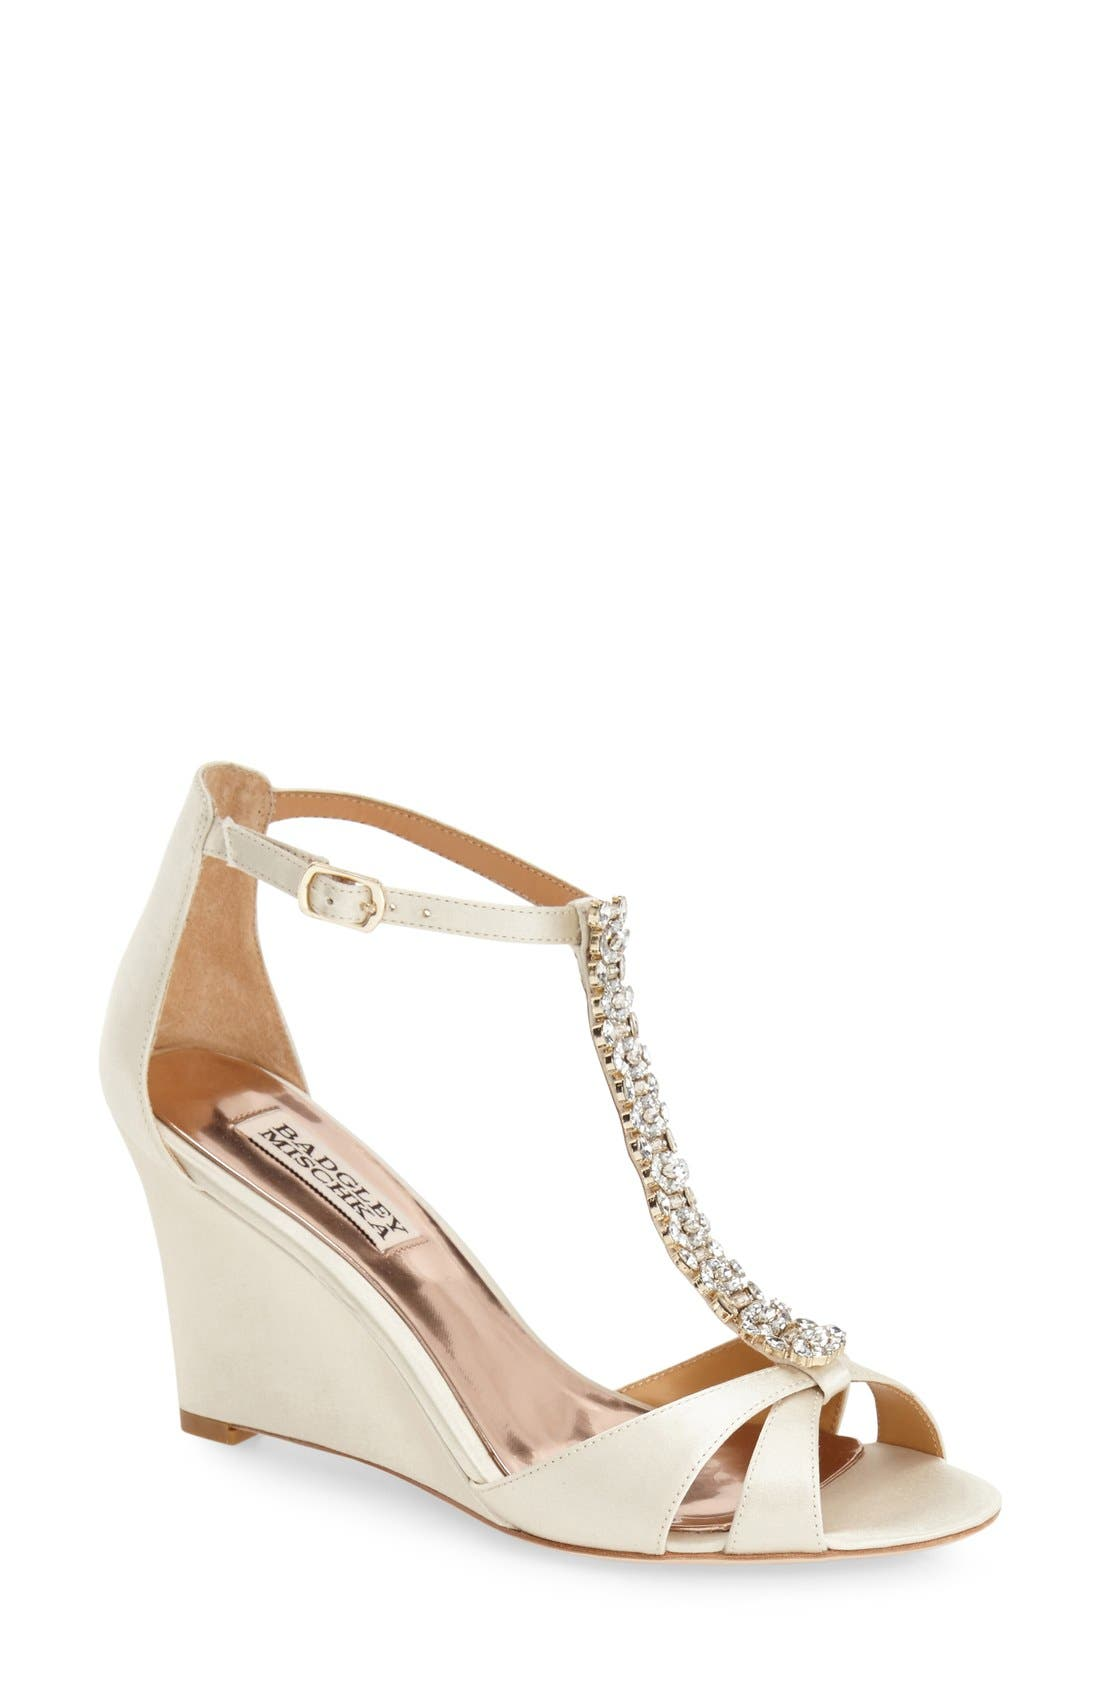 Badgley Mischka 'Romance' Wedge Sandal (Women)